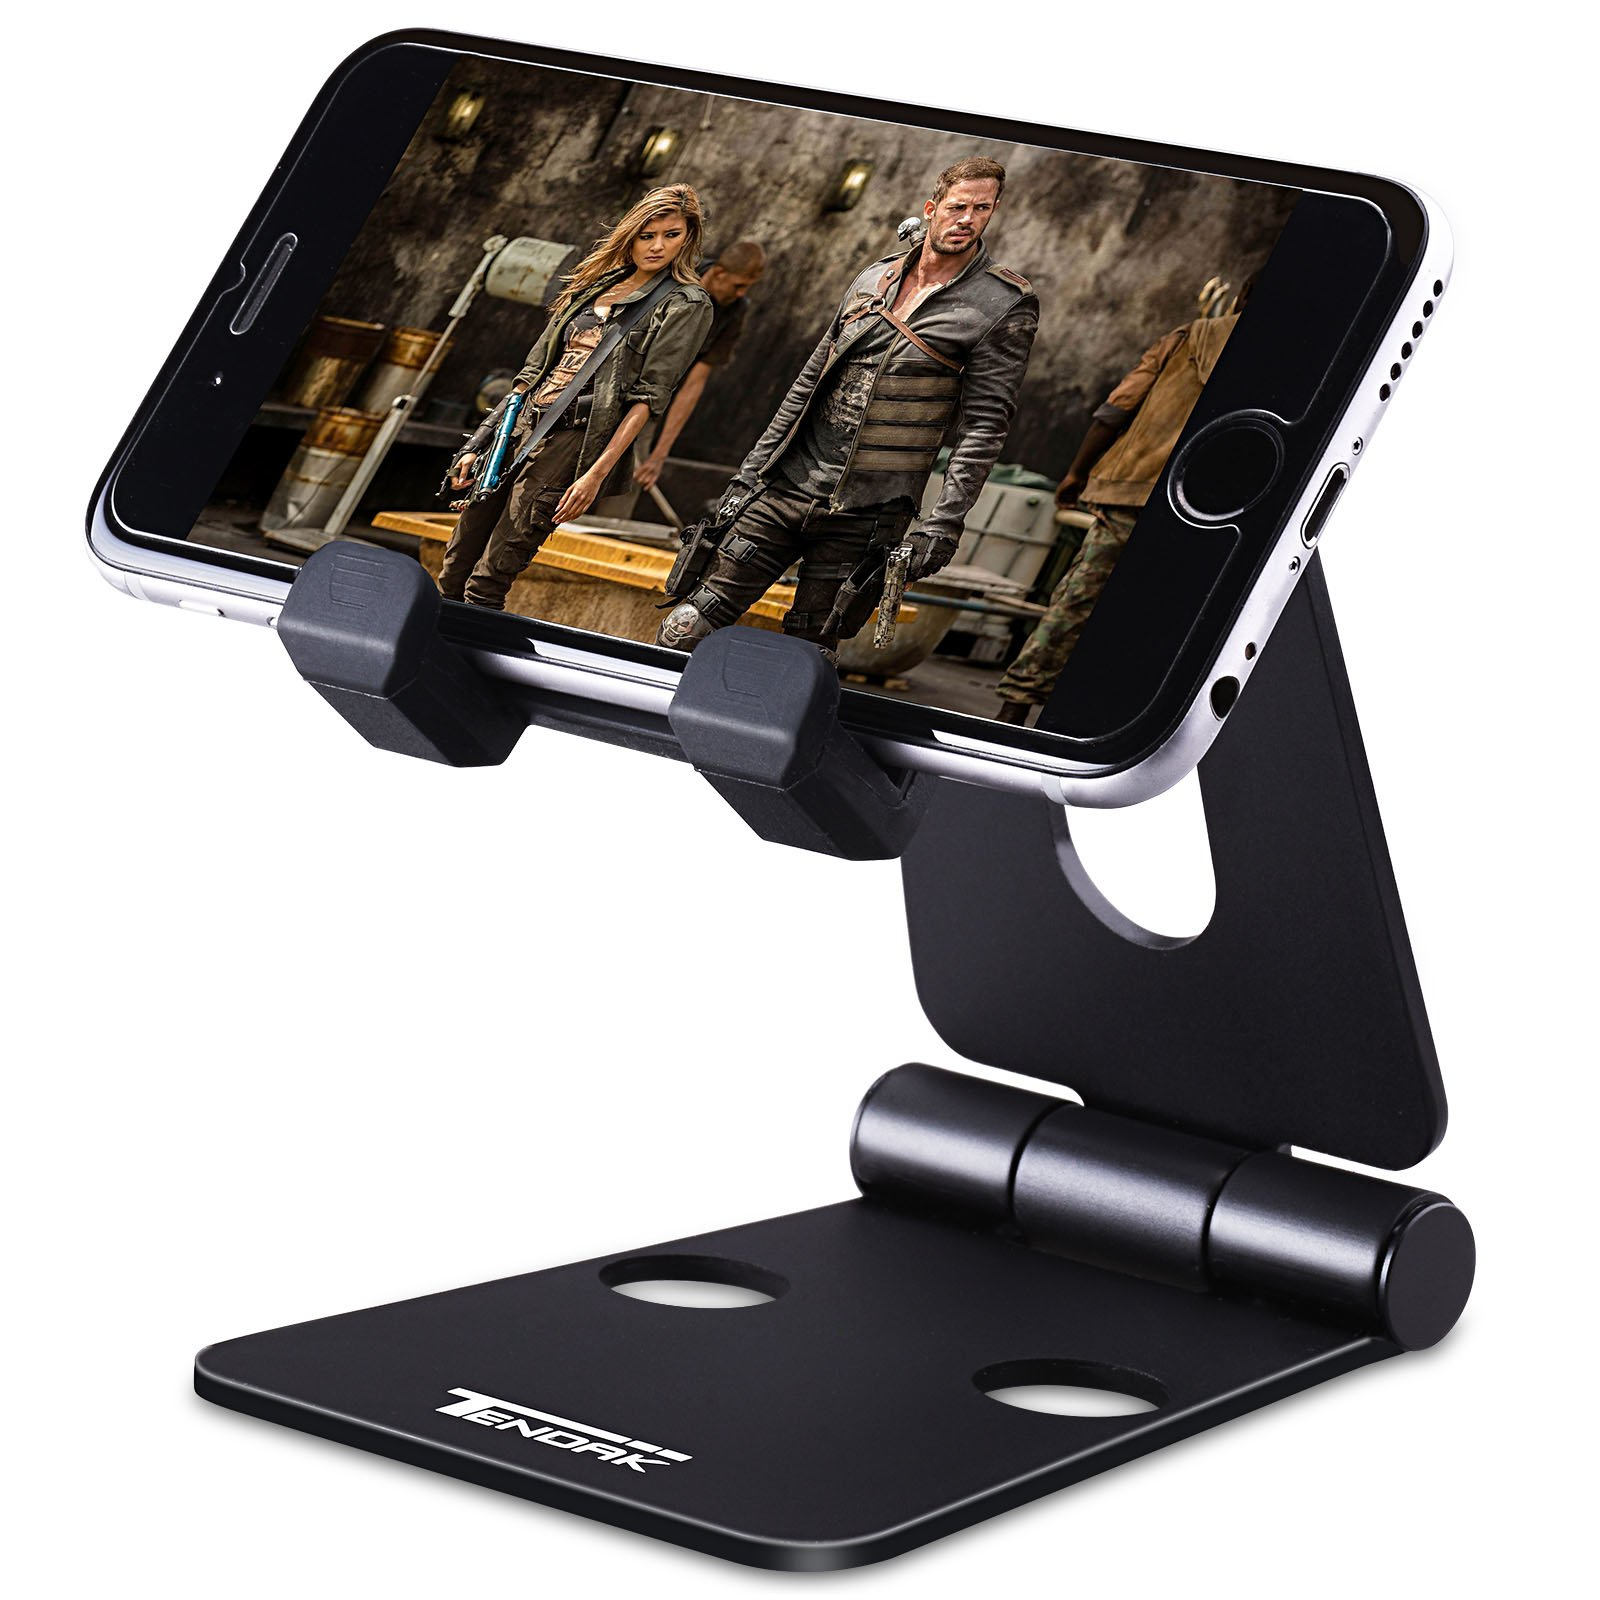 Cell Phone Stand, Tendak Nintendo Switch Stand, Foldable Multi-angle Tablet Video Game Holder Dock for iPhone X 8 7 6 Plus 6s iPad Mini and all Android Smartphones - Black